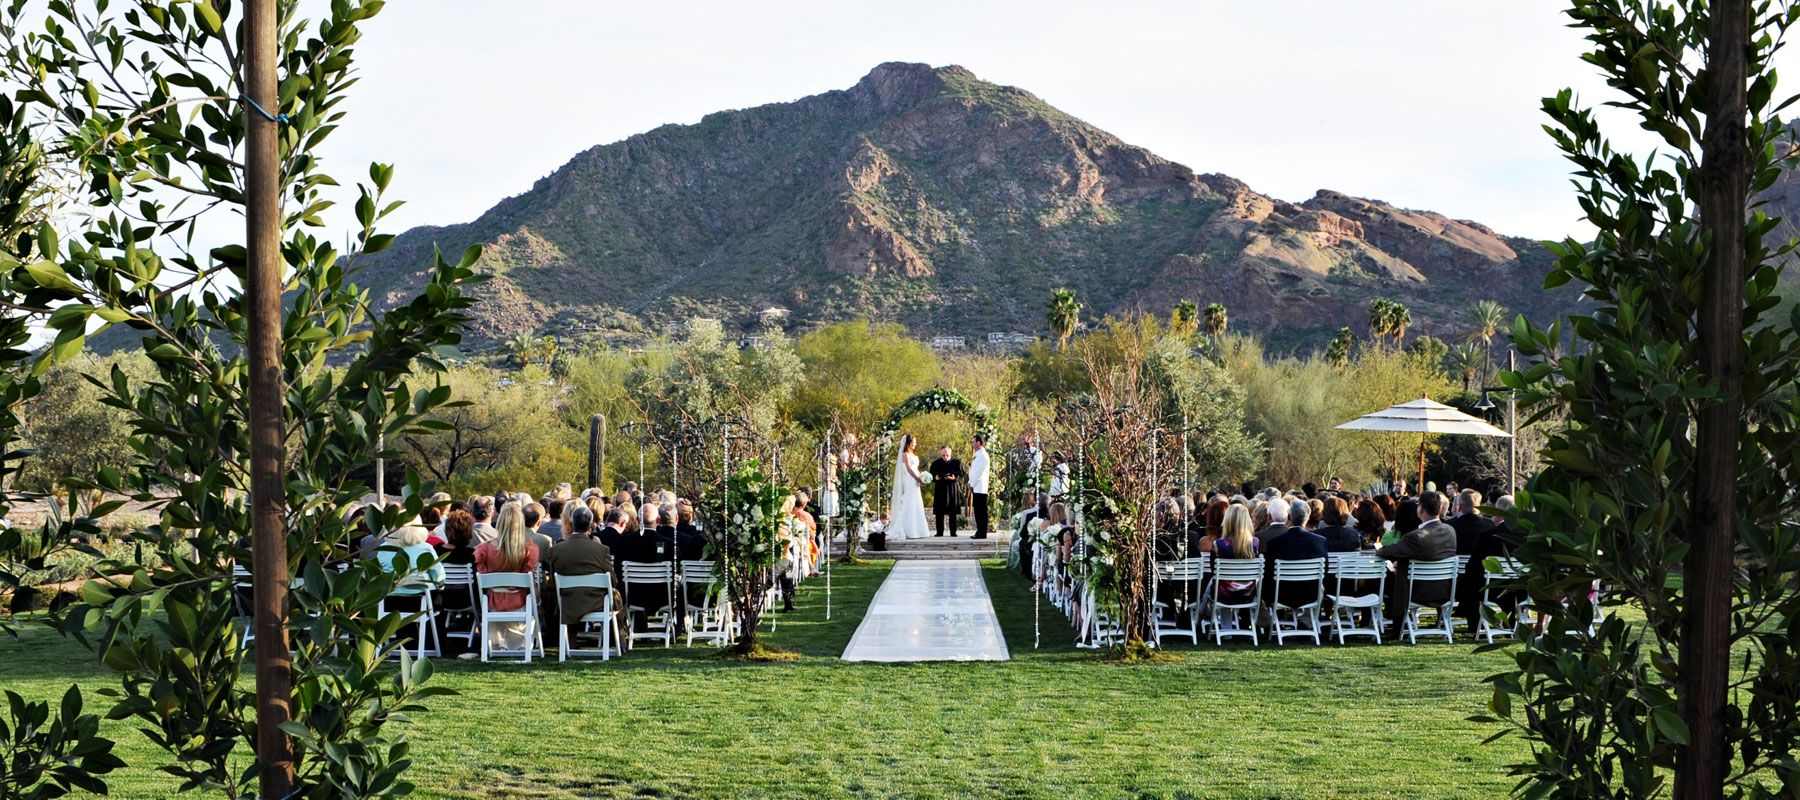 The best outdoor wedding venues in the phoenix arizona area el the best outdoor wedding venues in the phoenix arizona area el chorro has an junglespirit Gallery